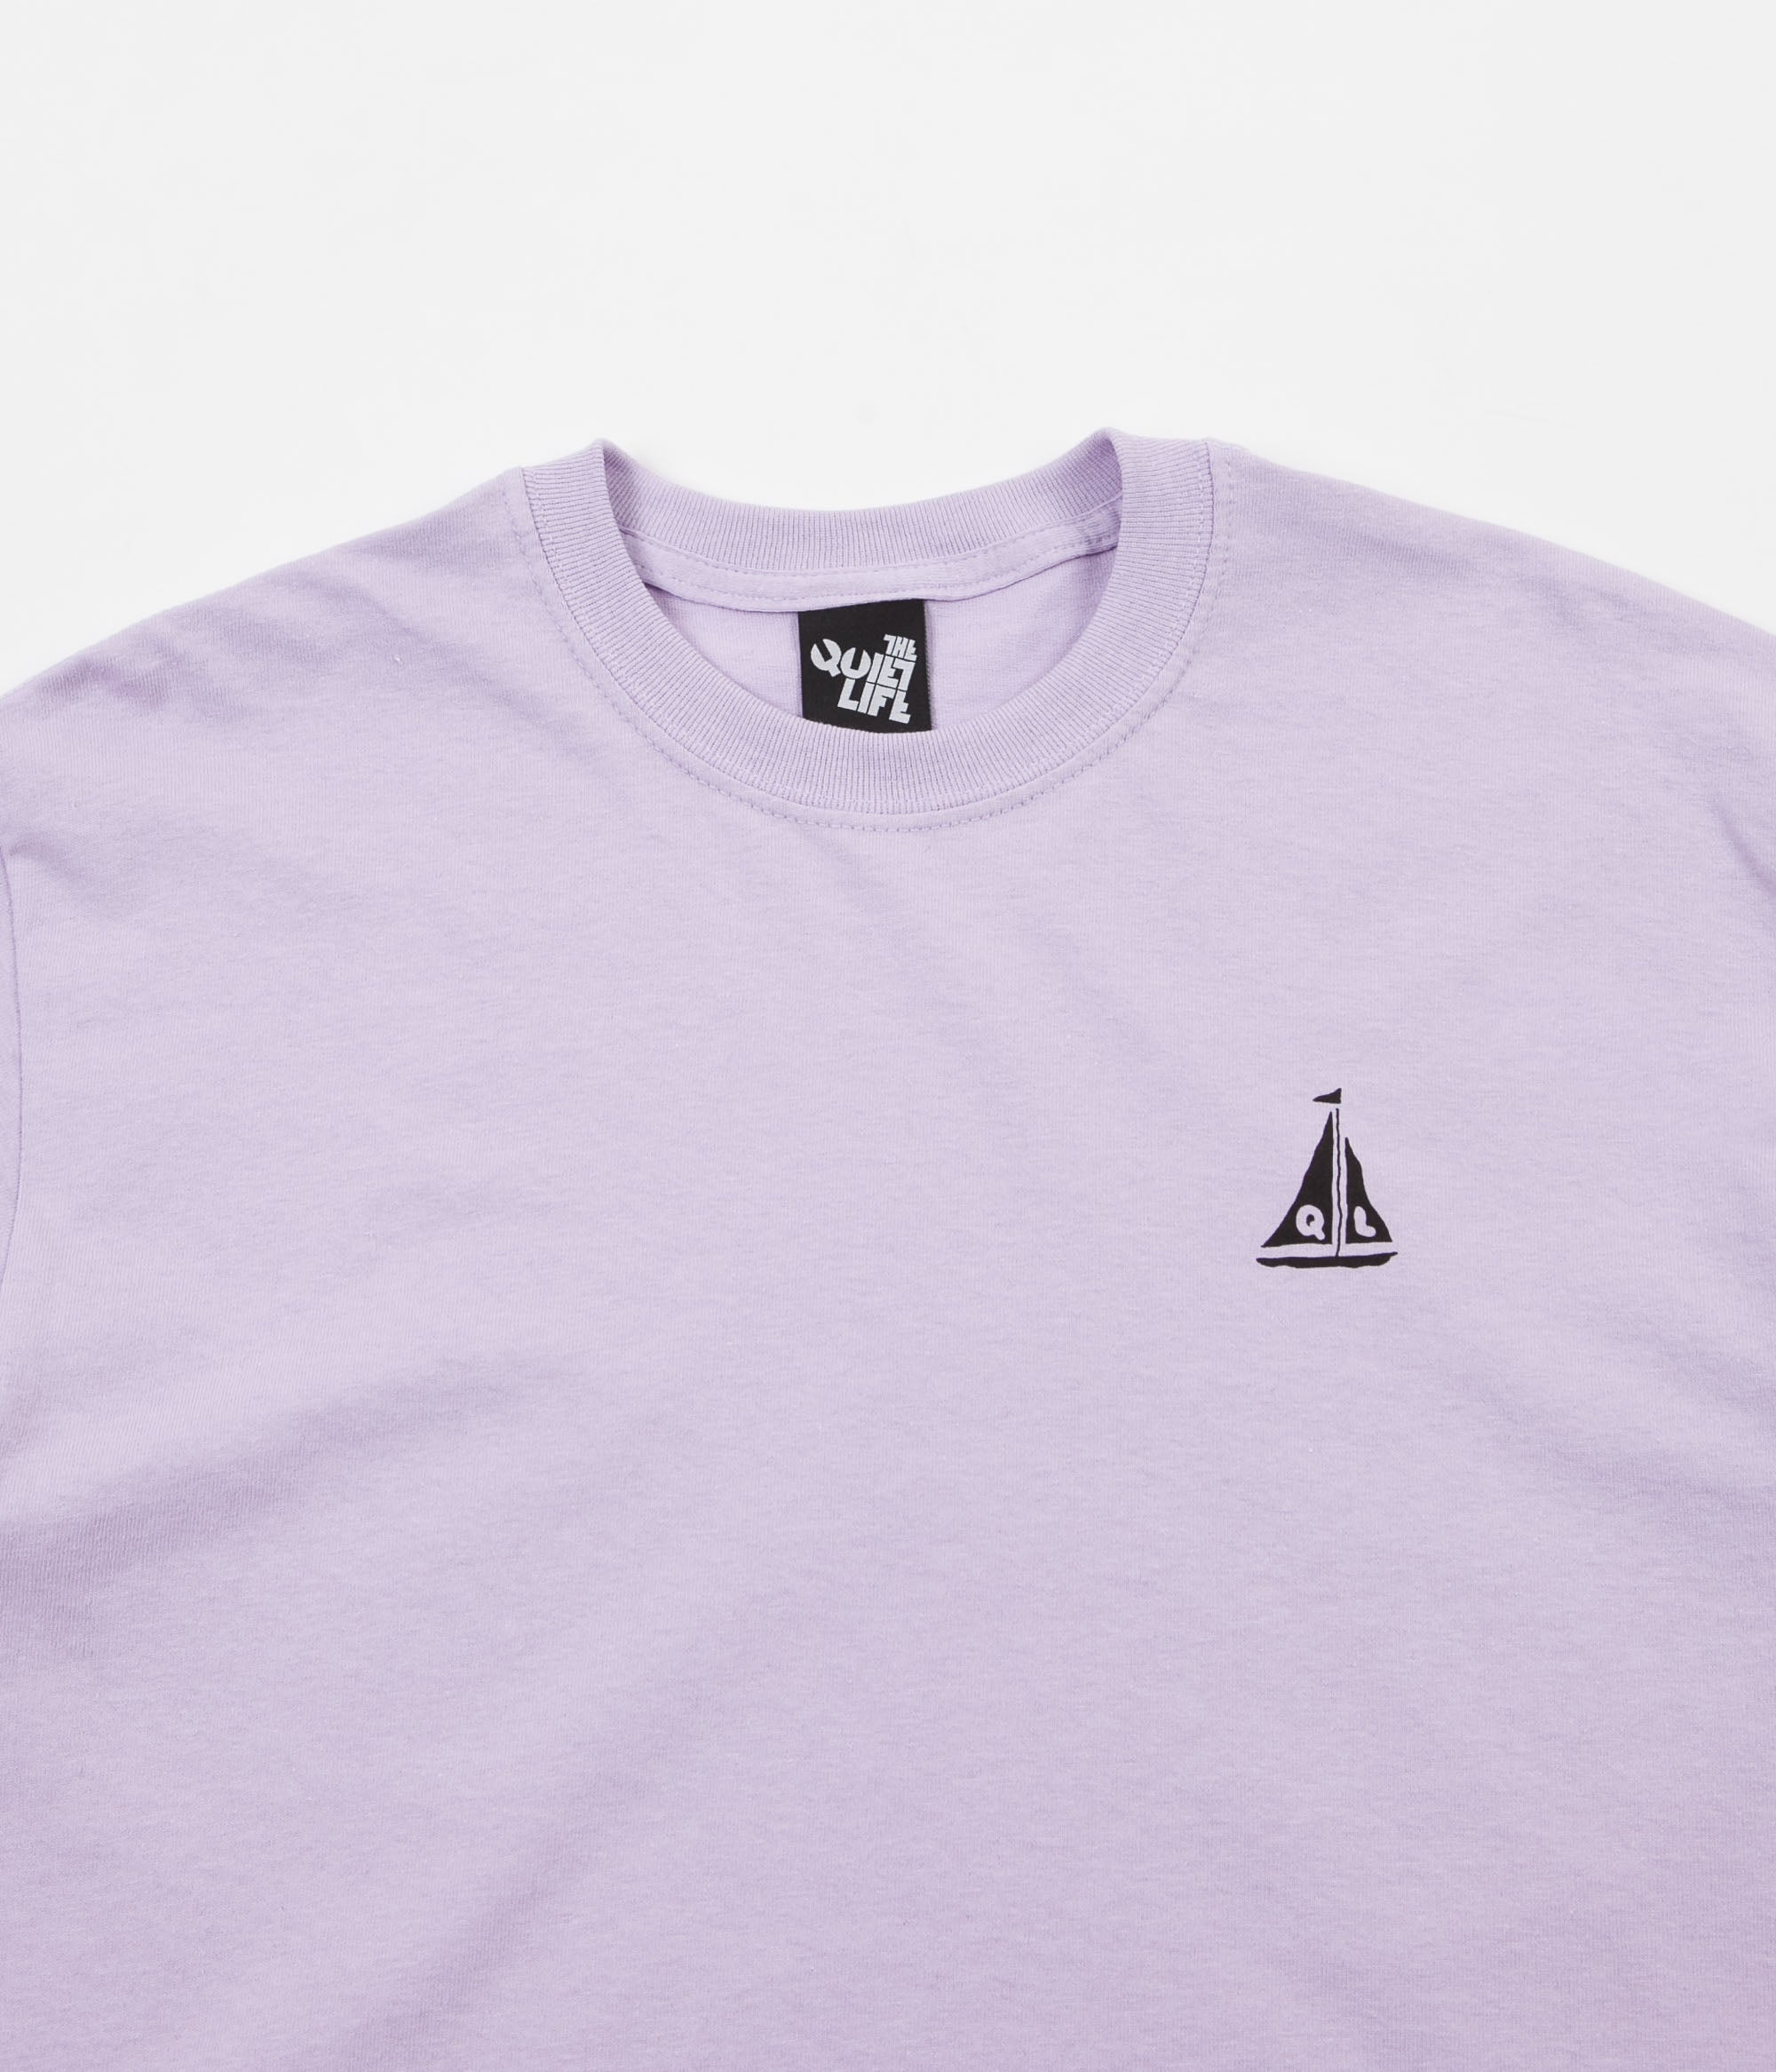 The Quiet Life Sail T-Shirt - Lilac